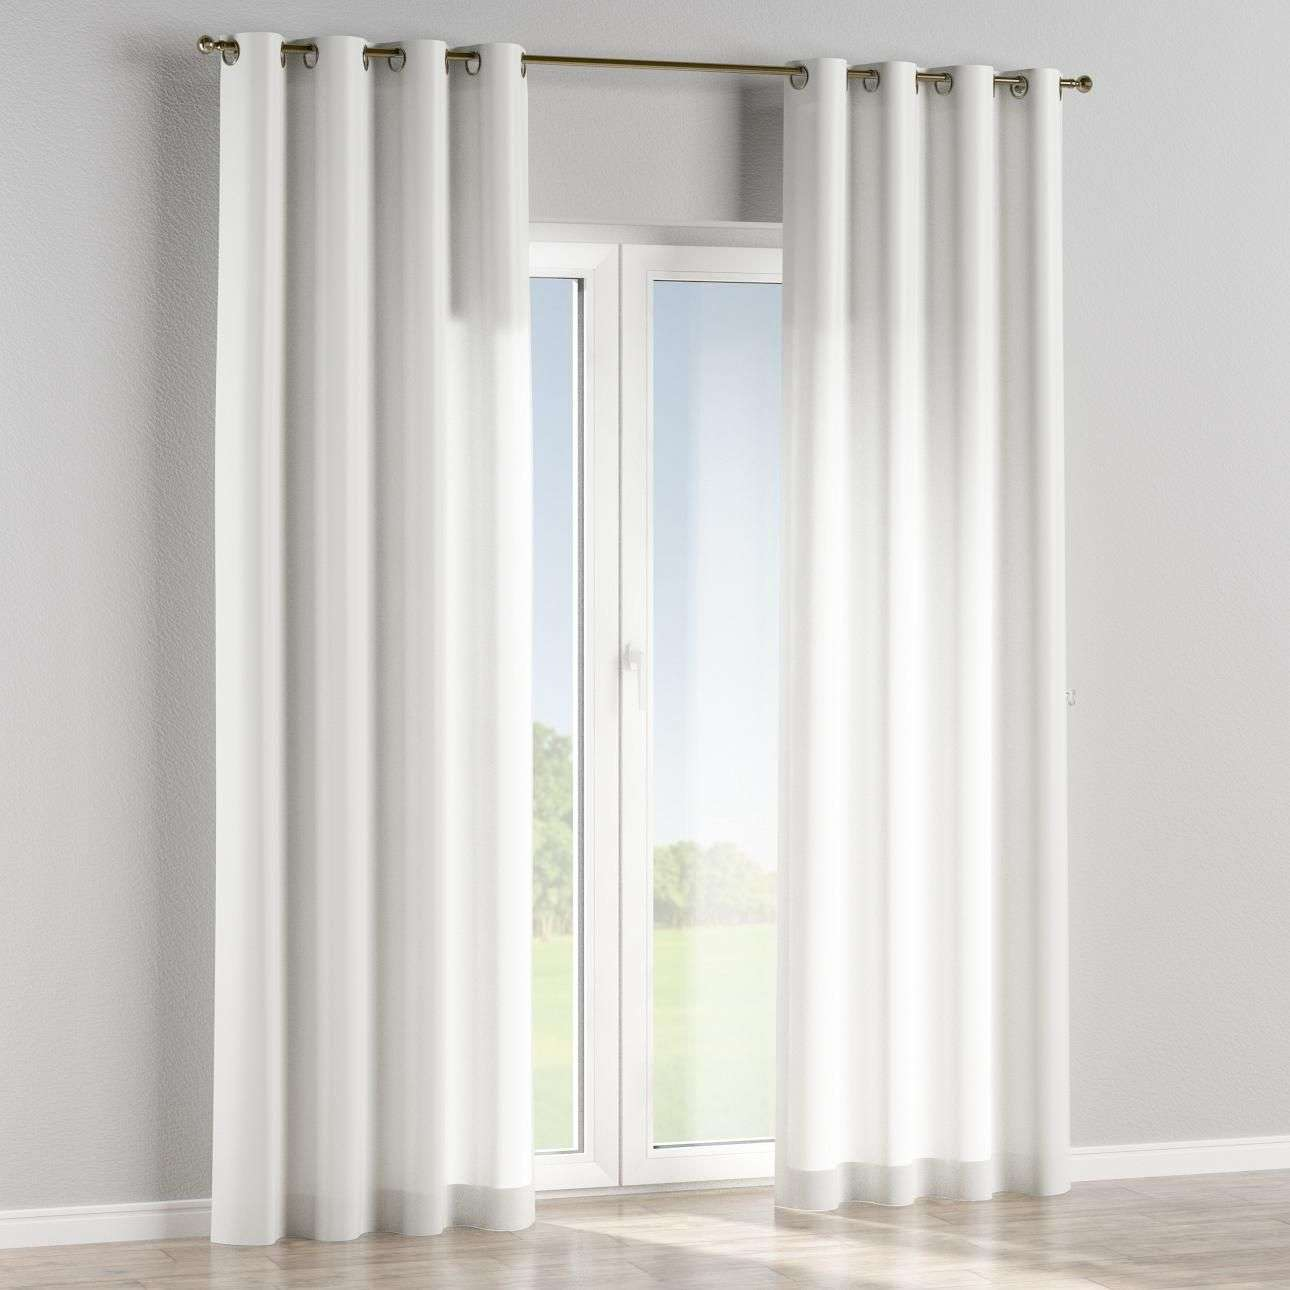 Eyelet curtains in collection SALE, fabric: 130-07